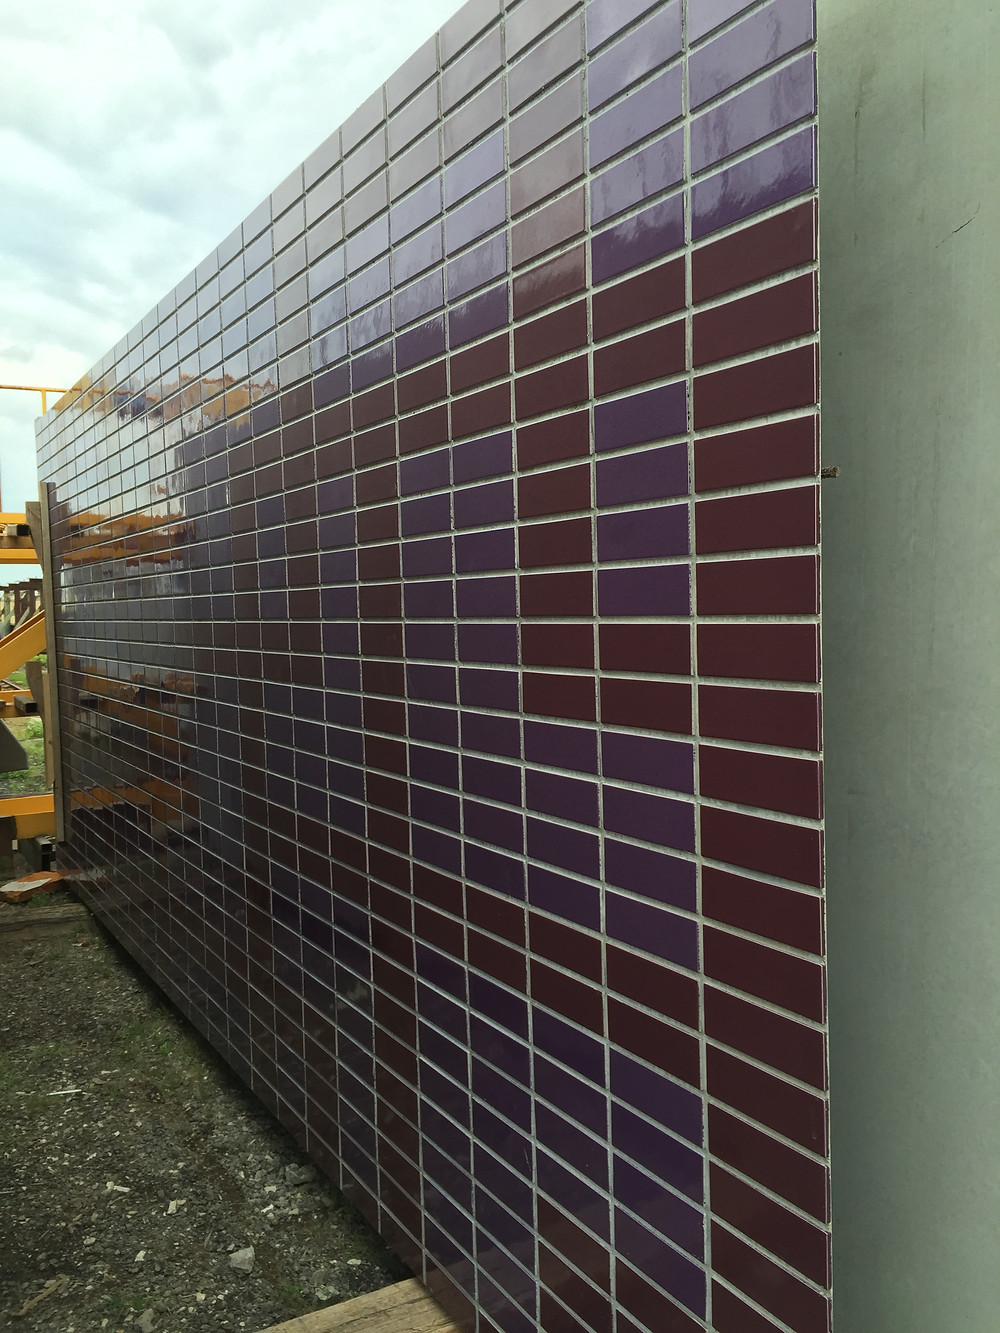 Magenta and cyan glazed brick tiles in a brick inlay facade